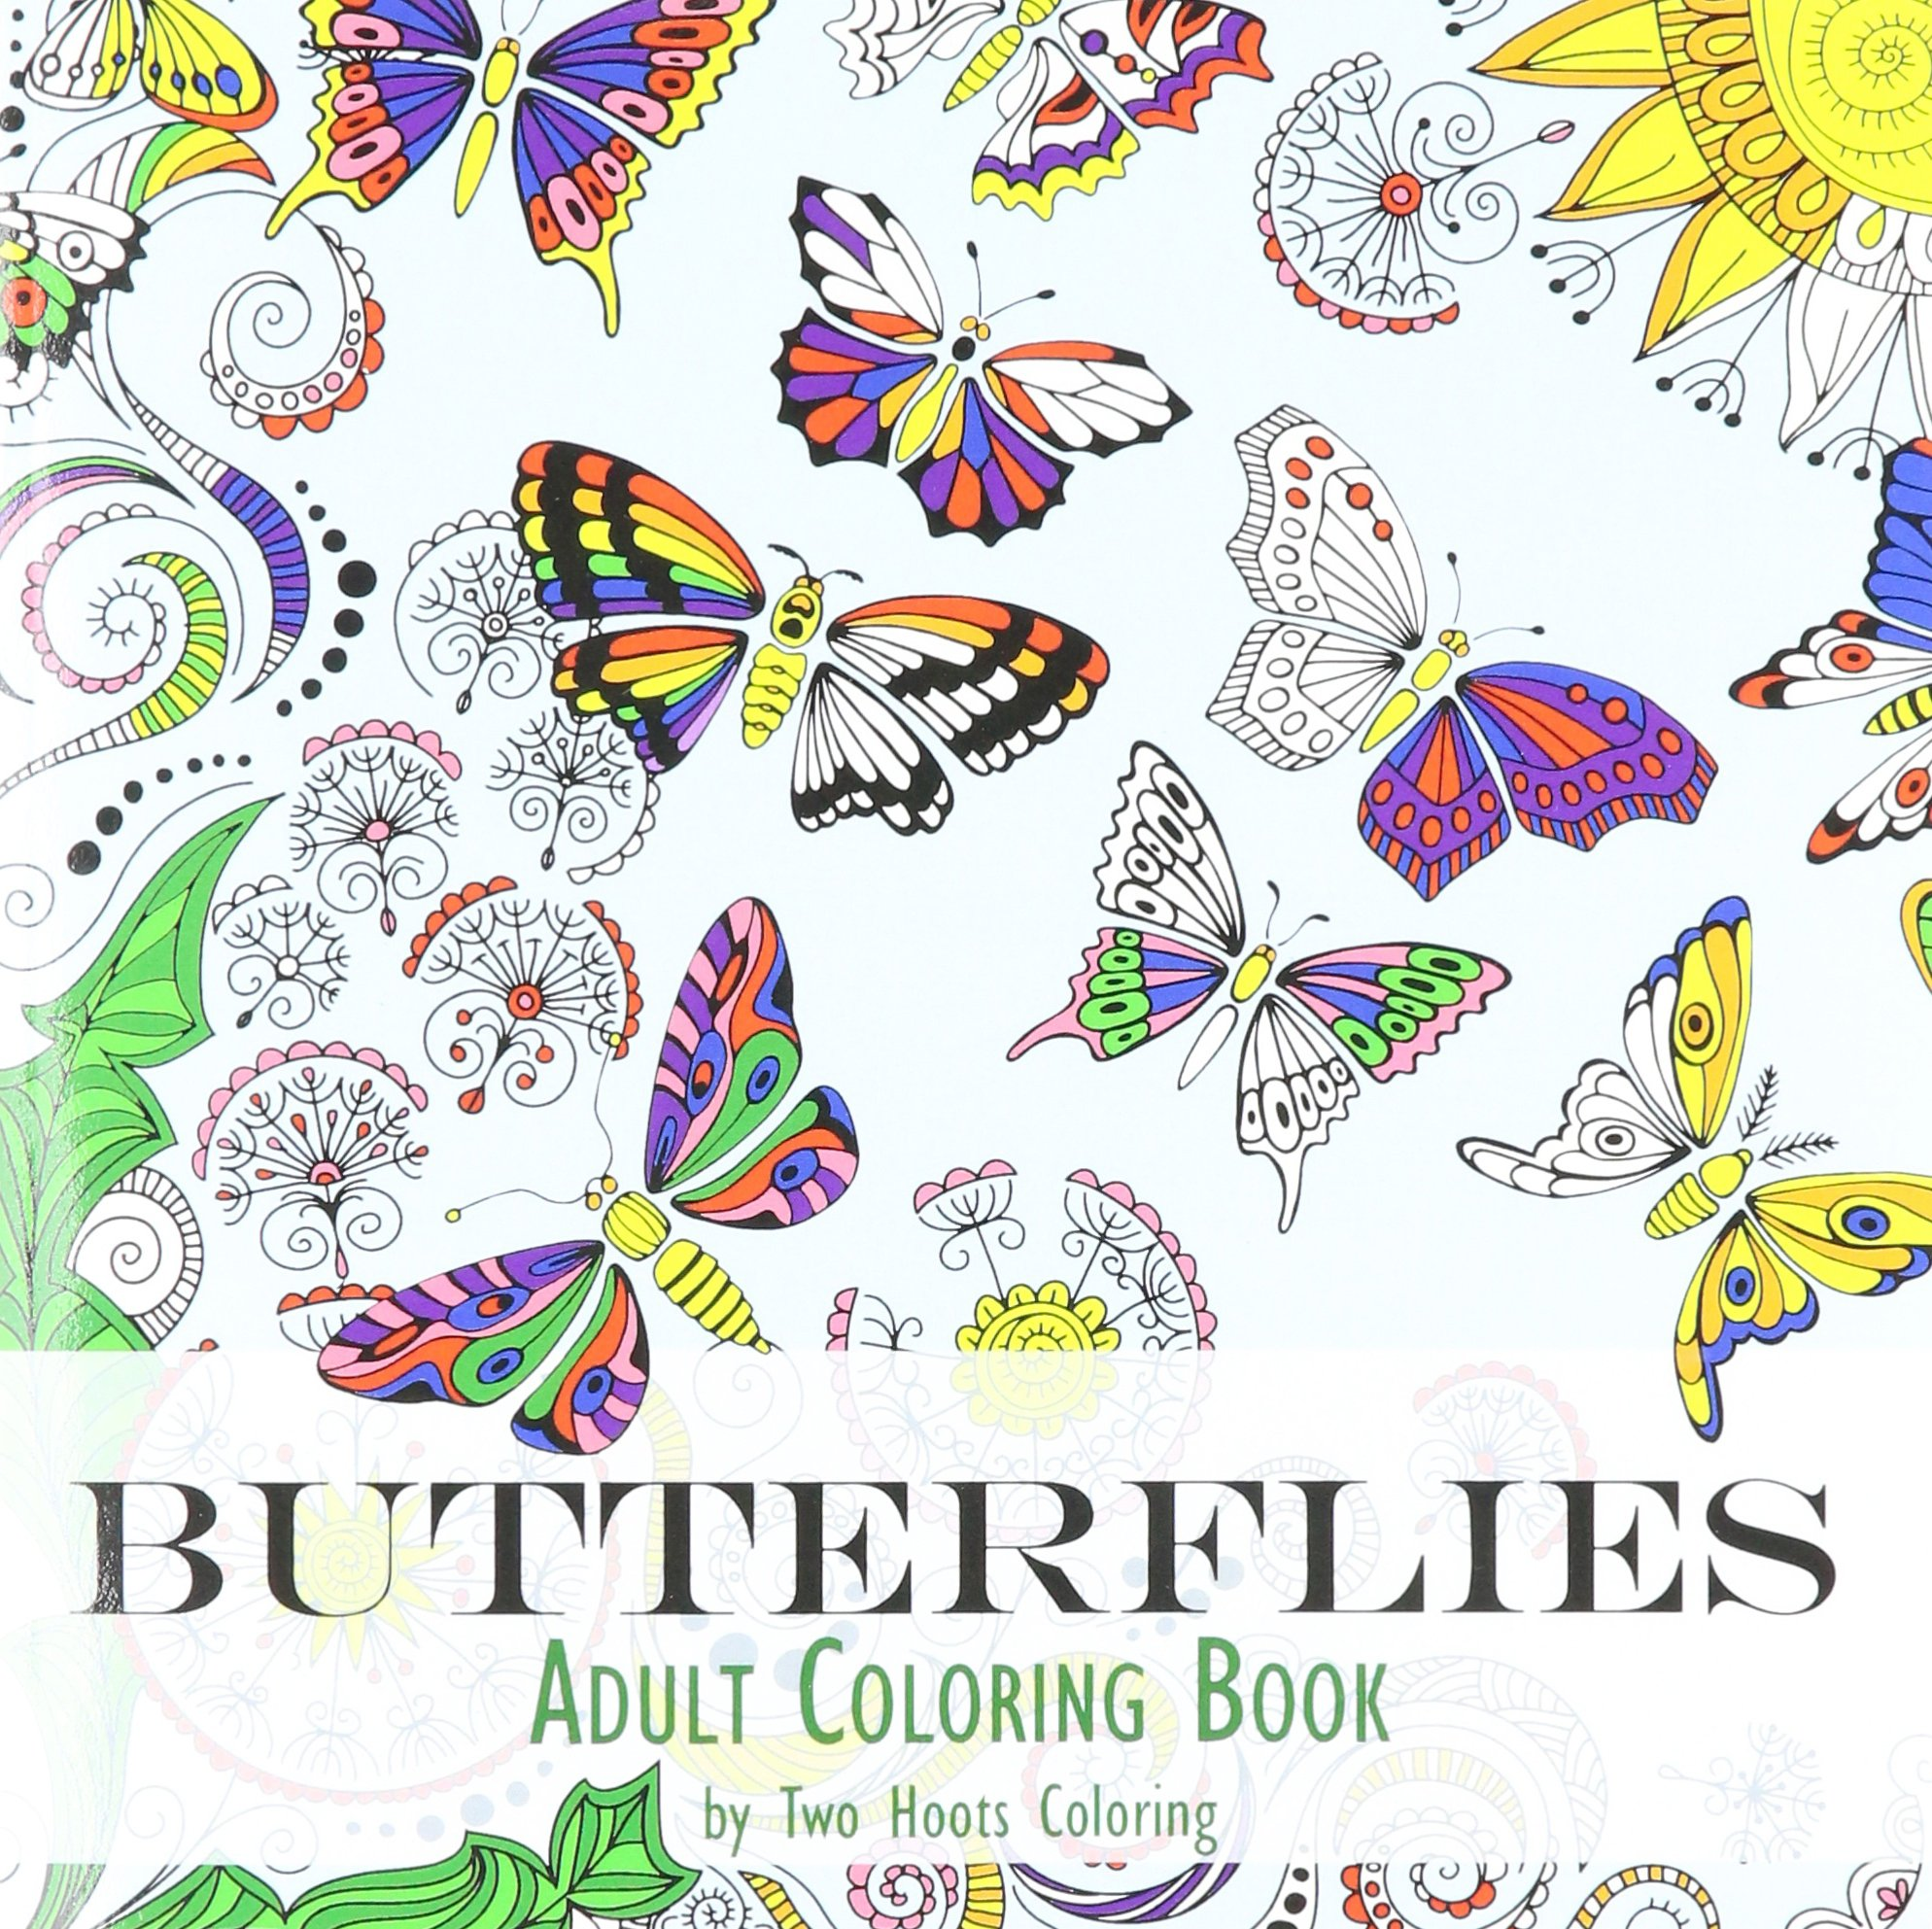 Coloring adults books - Adult Coloring Book Butterflies Two Hoots Coloring 9780692603789 Amazon Com Books